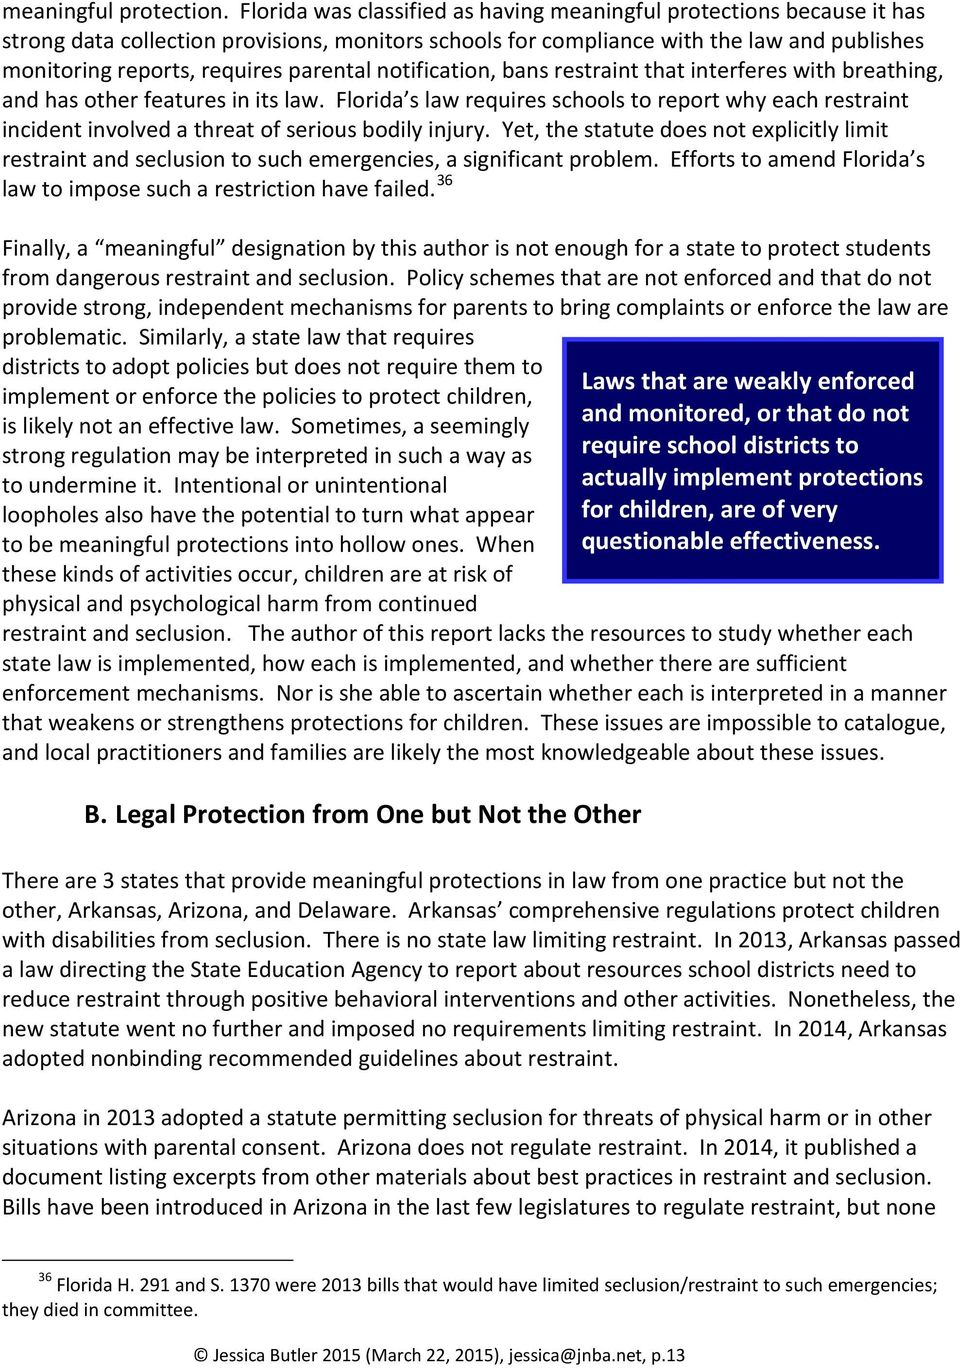 parental notification, bans restraint that interferes with breathing, and has other features in its law.